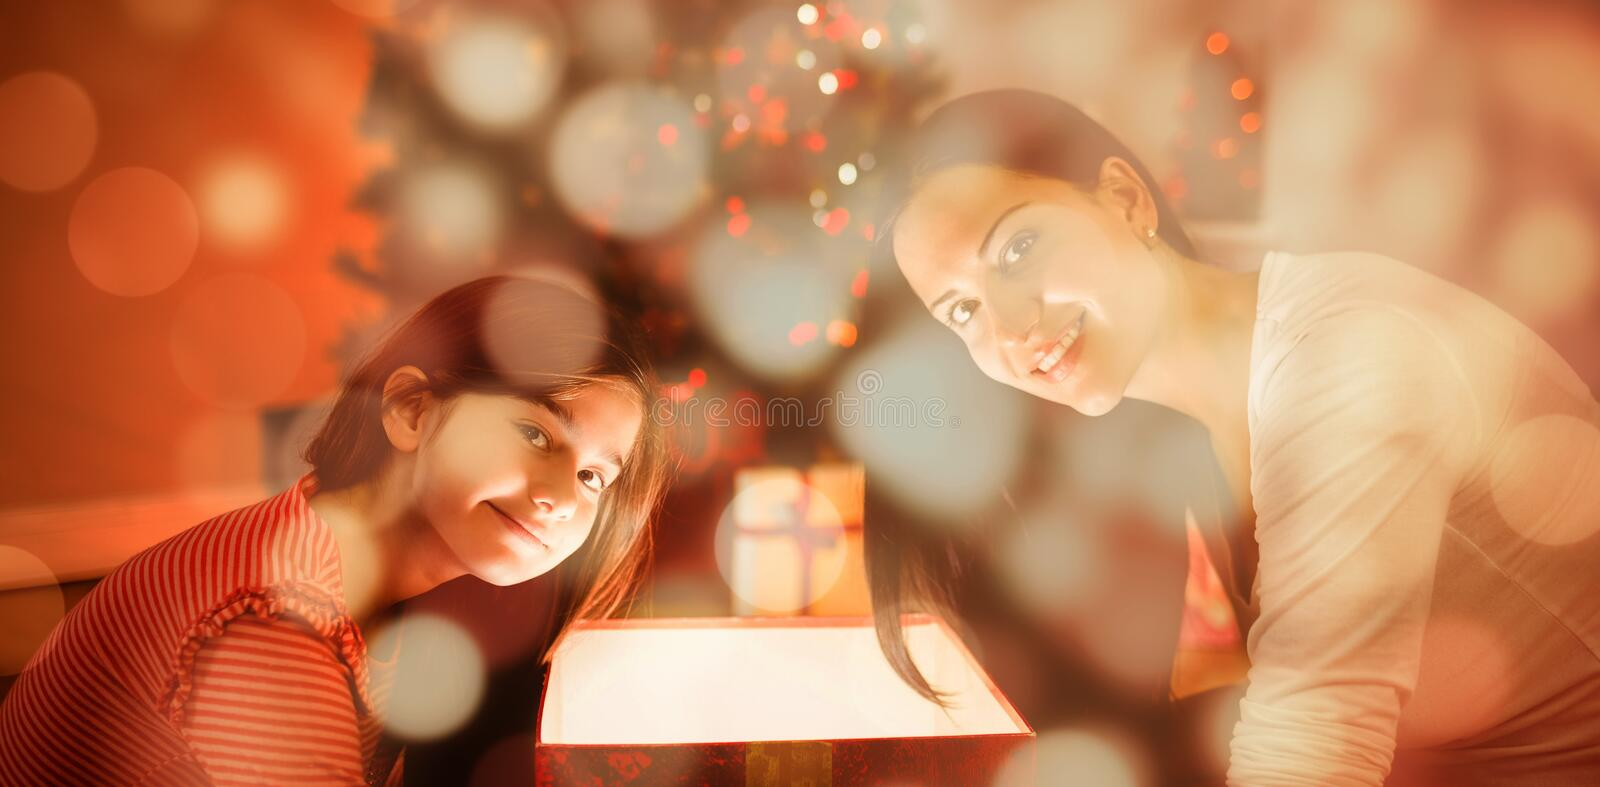 Composite image of festive mother and daughter opening a glowing christmas gift royalty free stock image